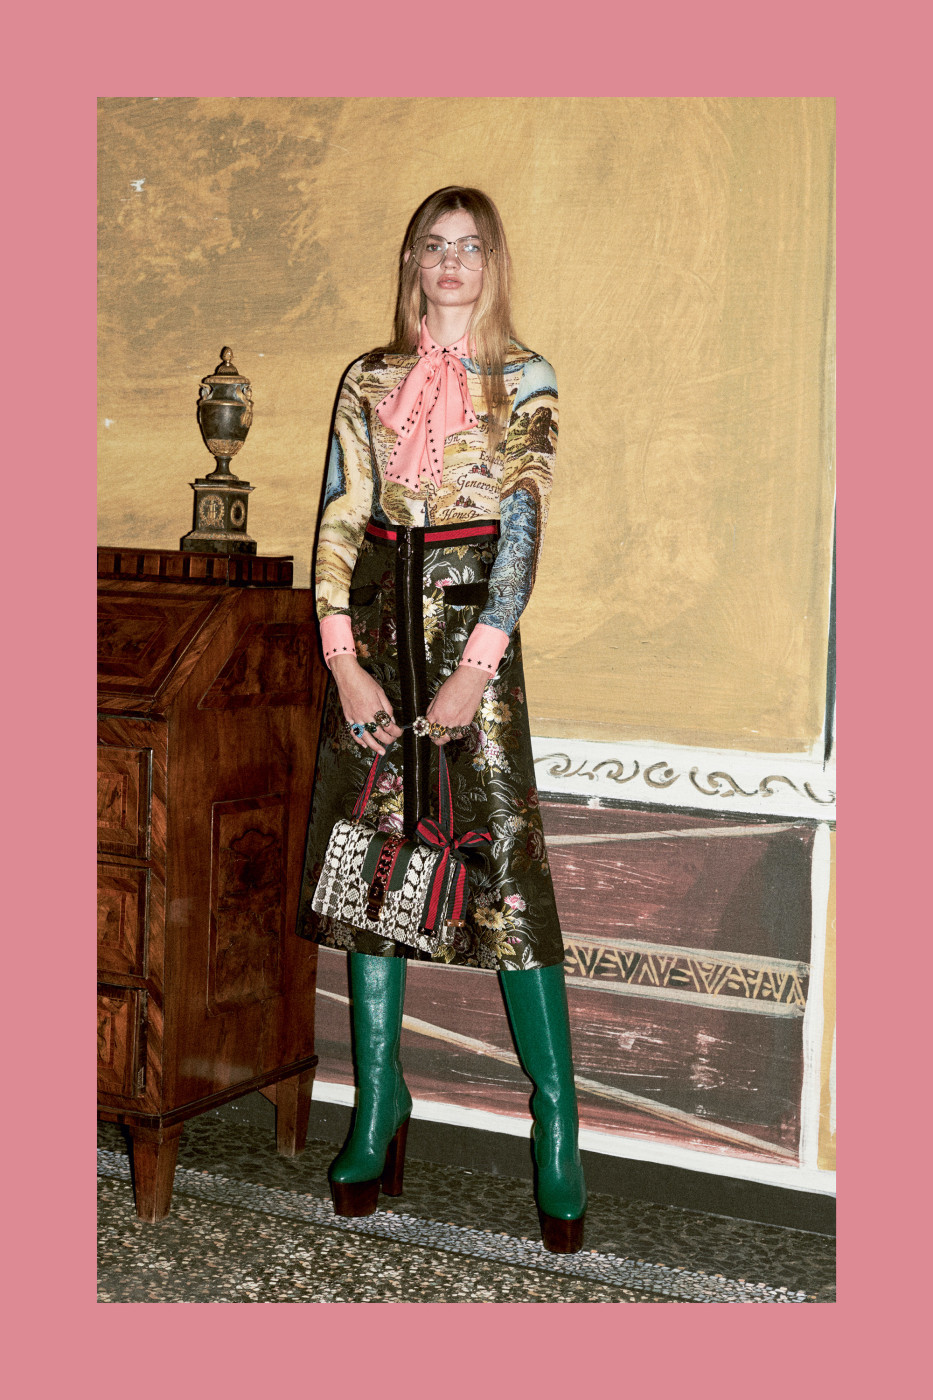 paula-schinschel-gucci-pre-fall-2016-lookbook-42